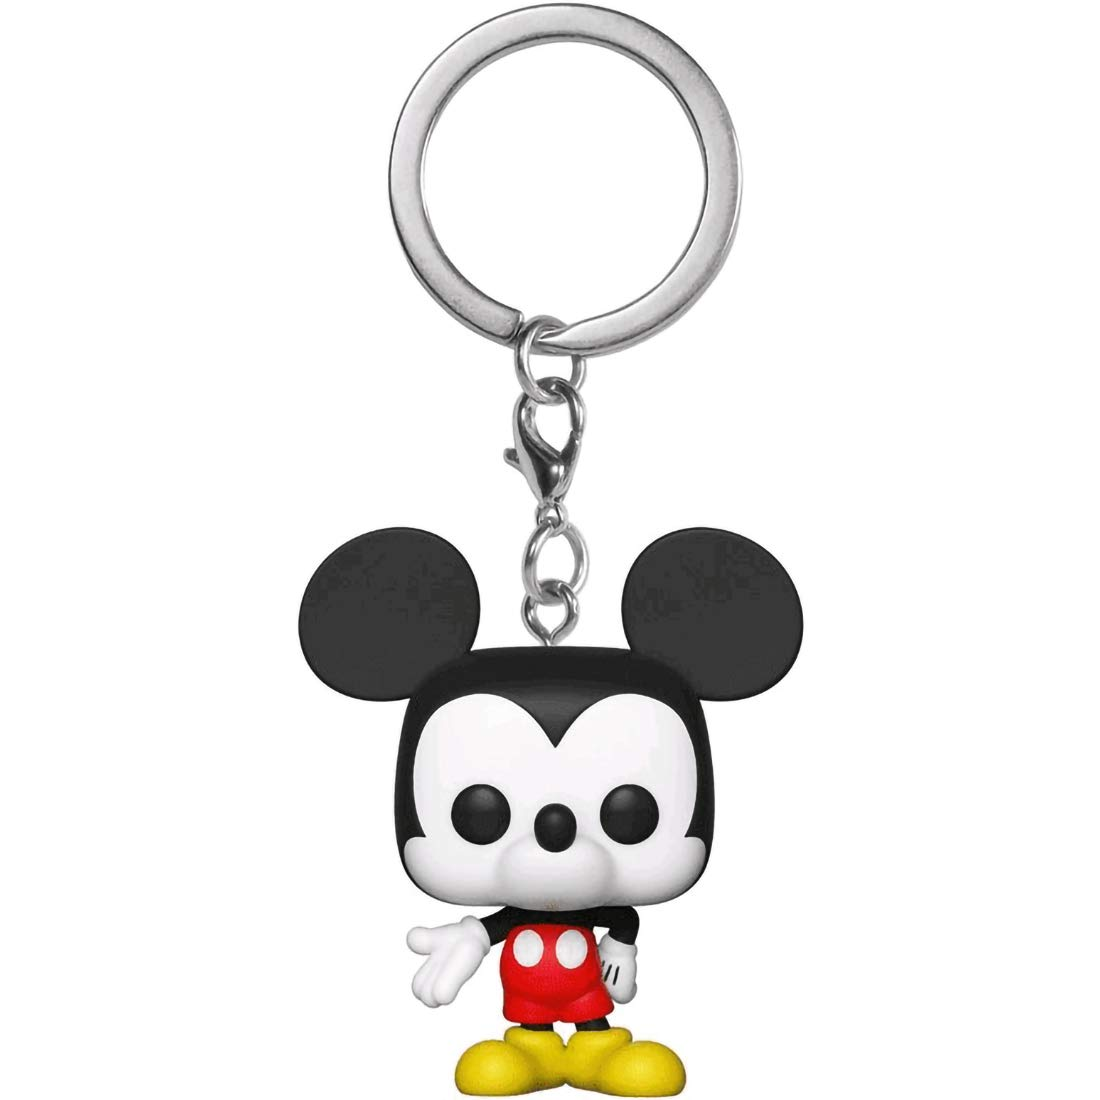 Mickey Mouse: Mickeys 90th Anniversary x Funko Pocket POP! Mini-Figural Keychain + 1 Classic Disney Trading Card Bundle [32568]